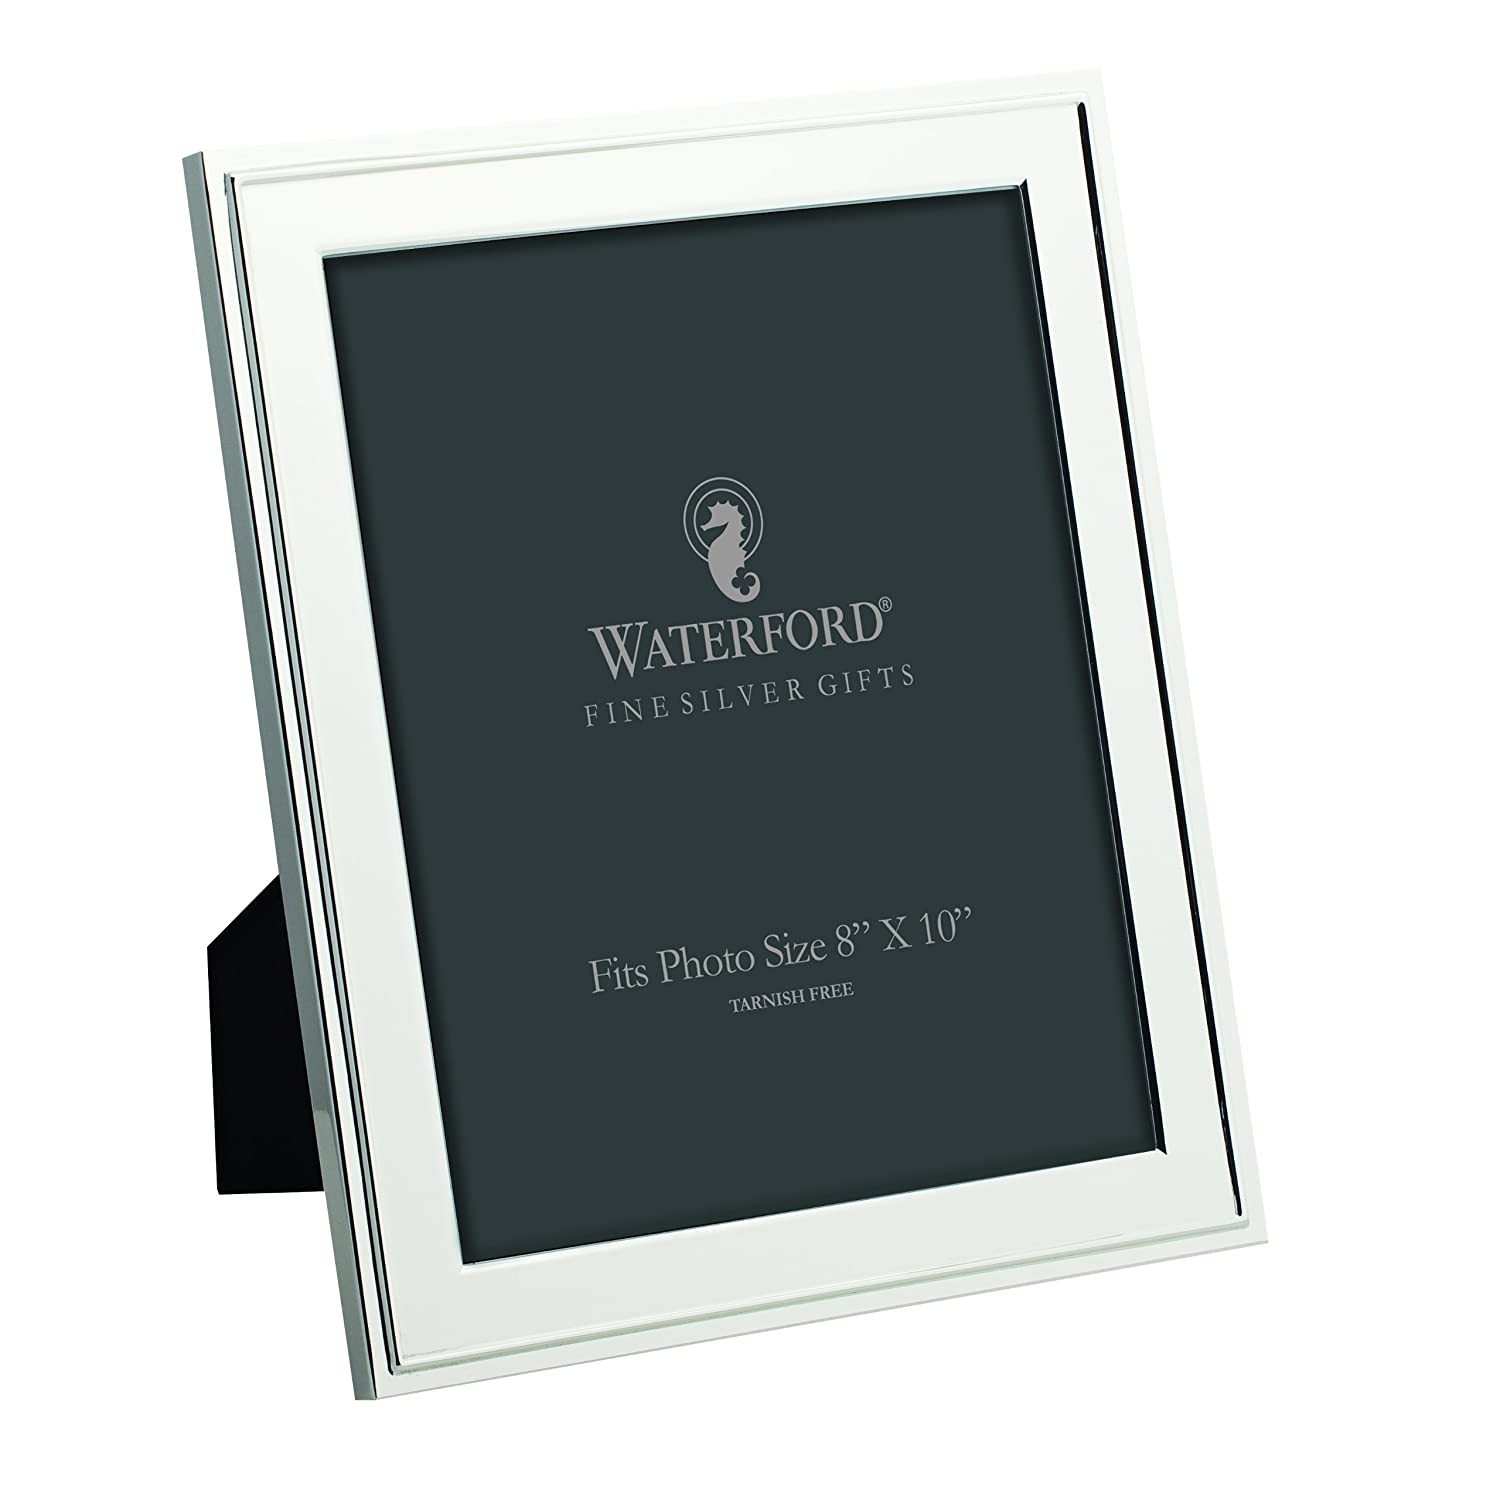 Amazon.com - Waterford Classic 8 by 10 Frame - Silver Picture Frame